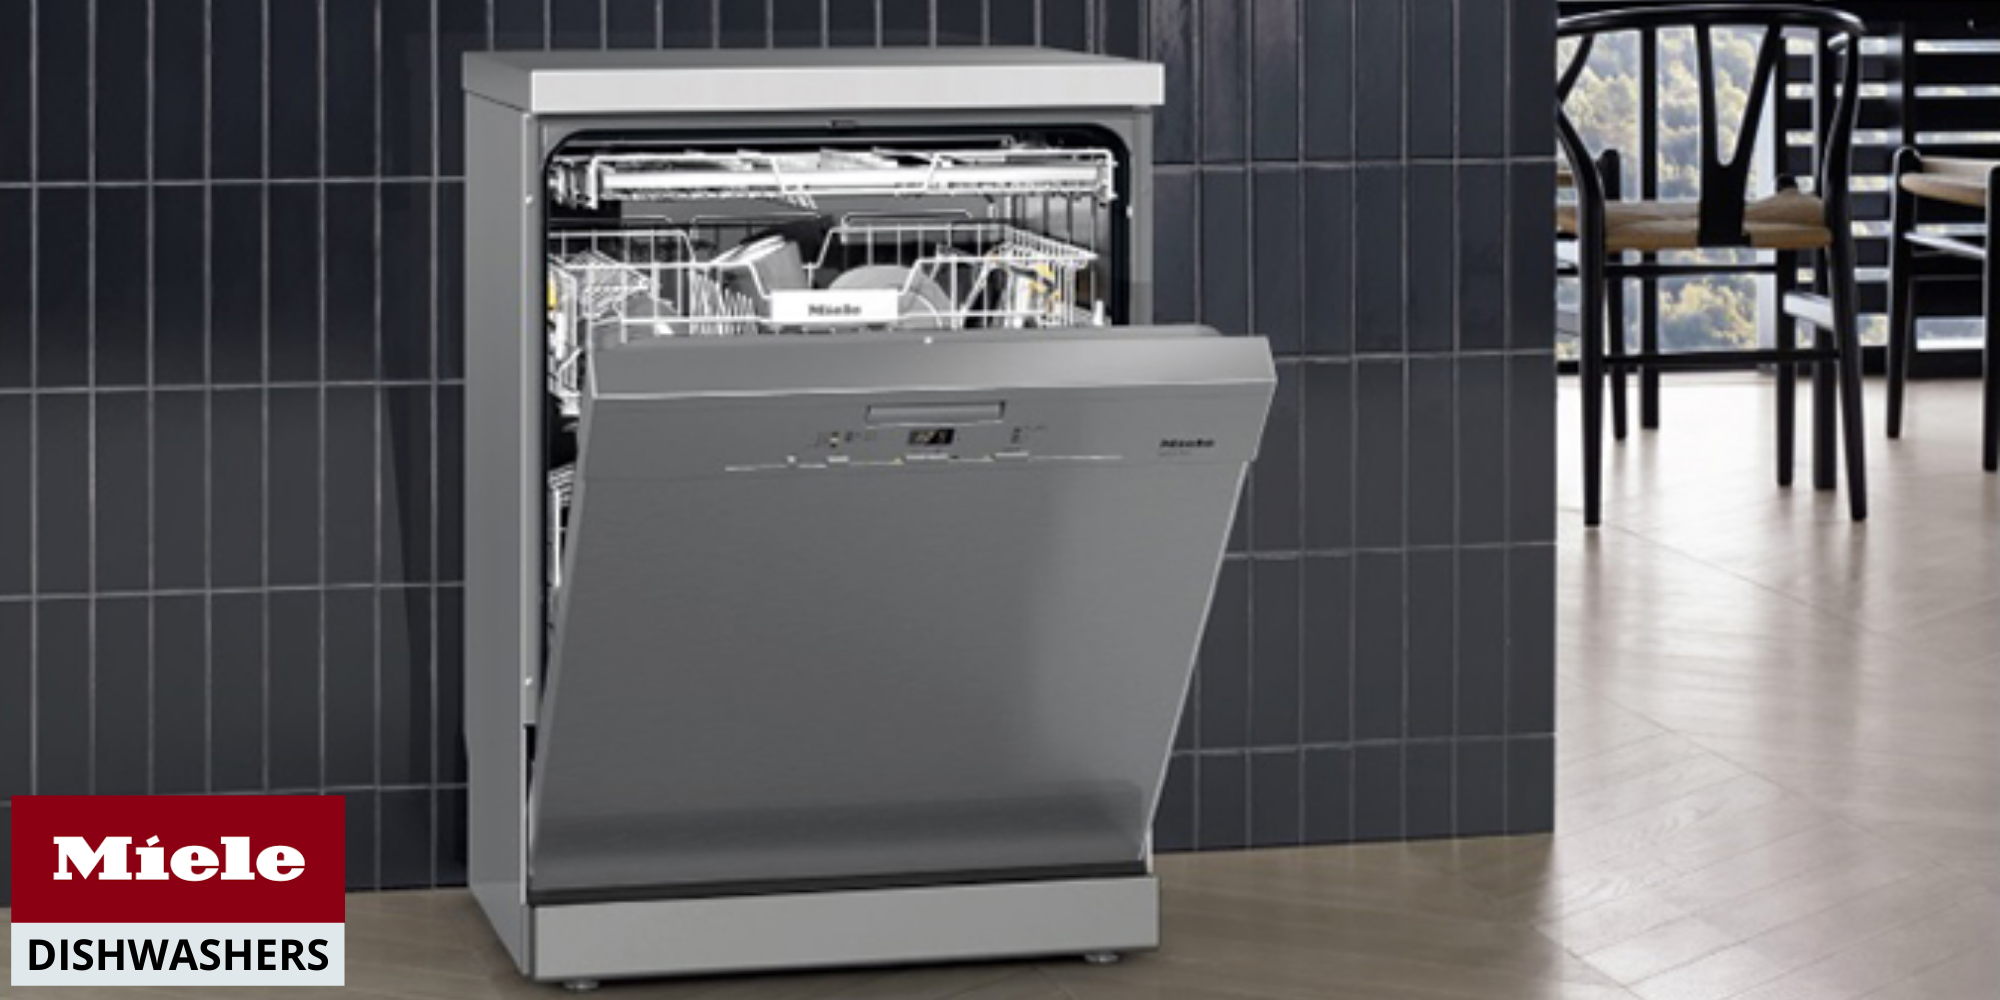 miele-dishwashers-banner-1.png